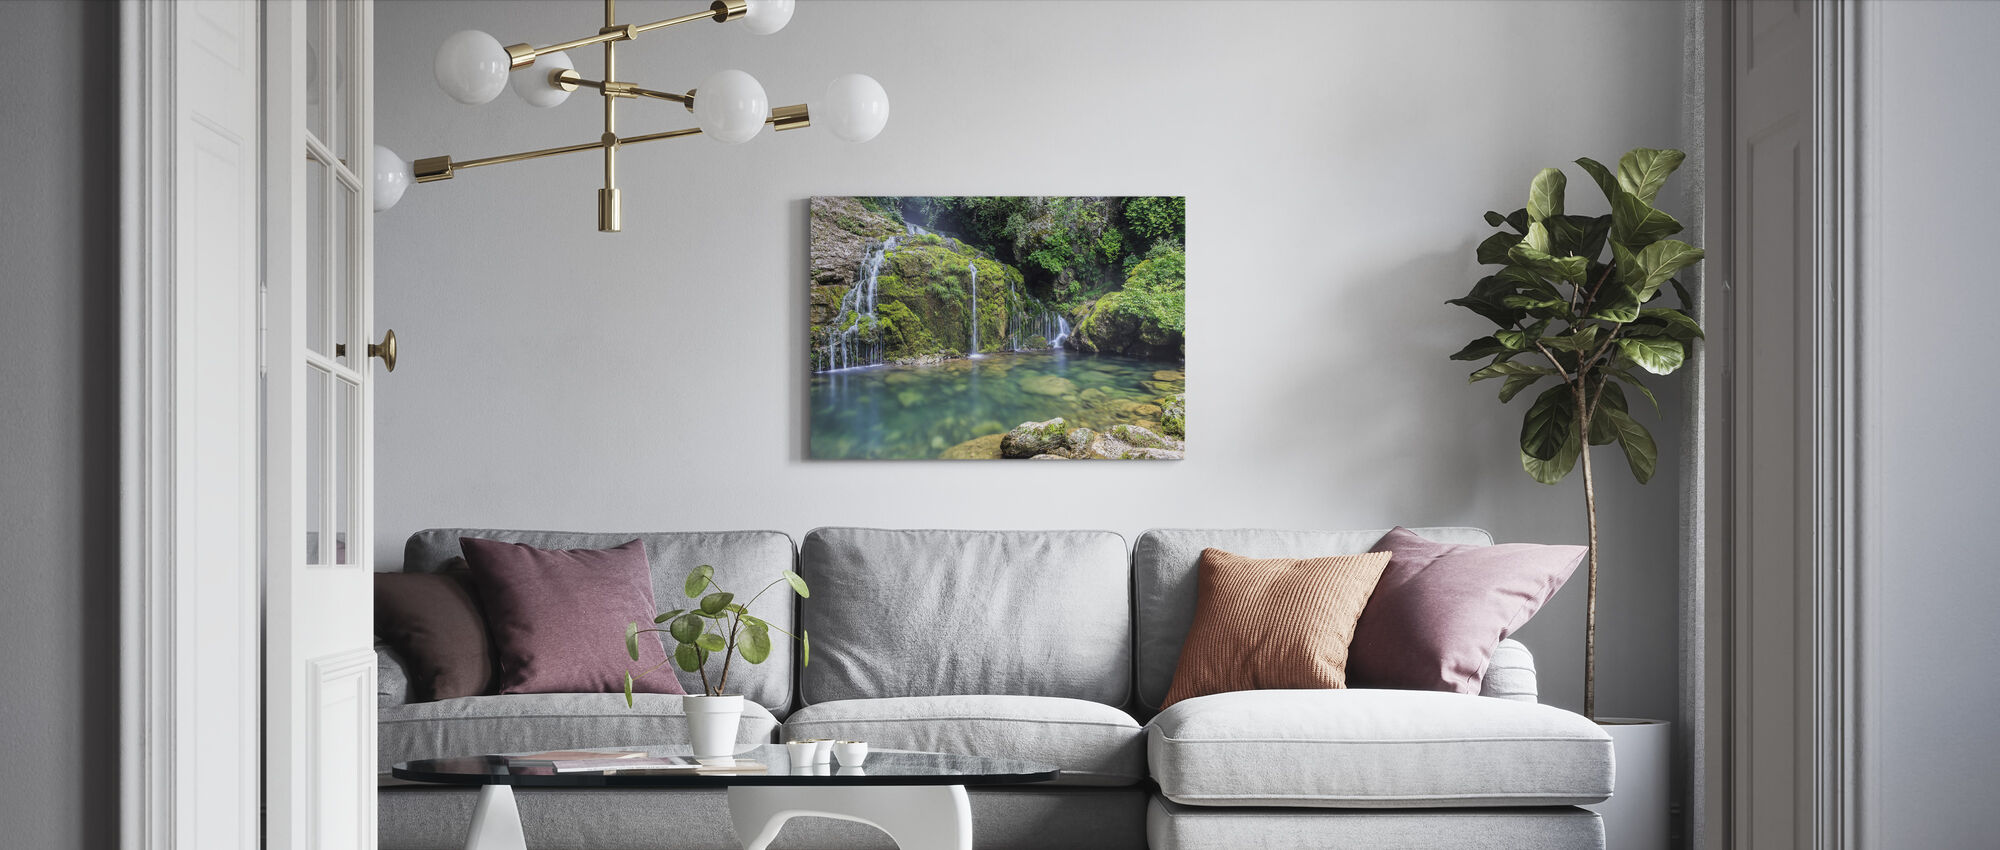 Water from the Mountain - Canvas print - Living Room